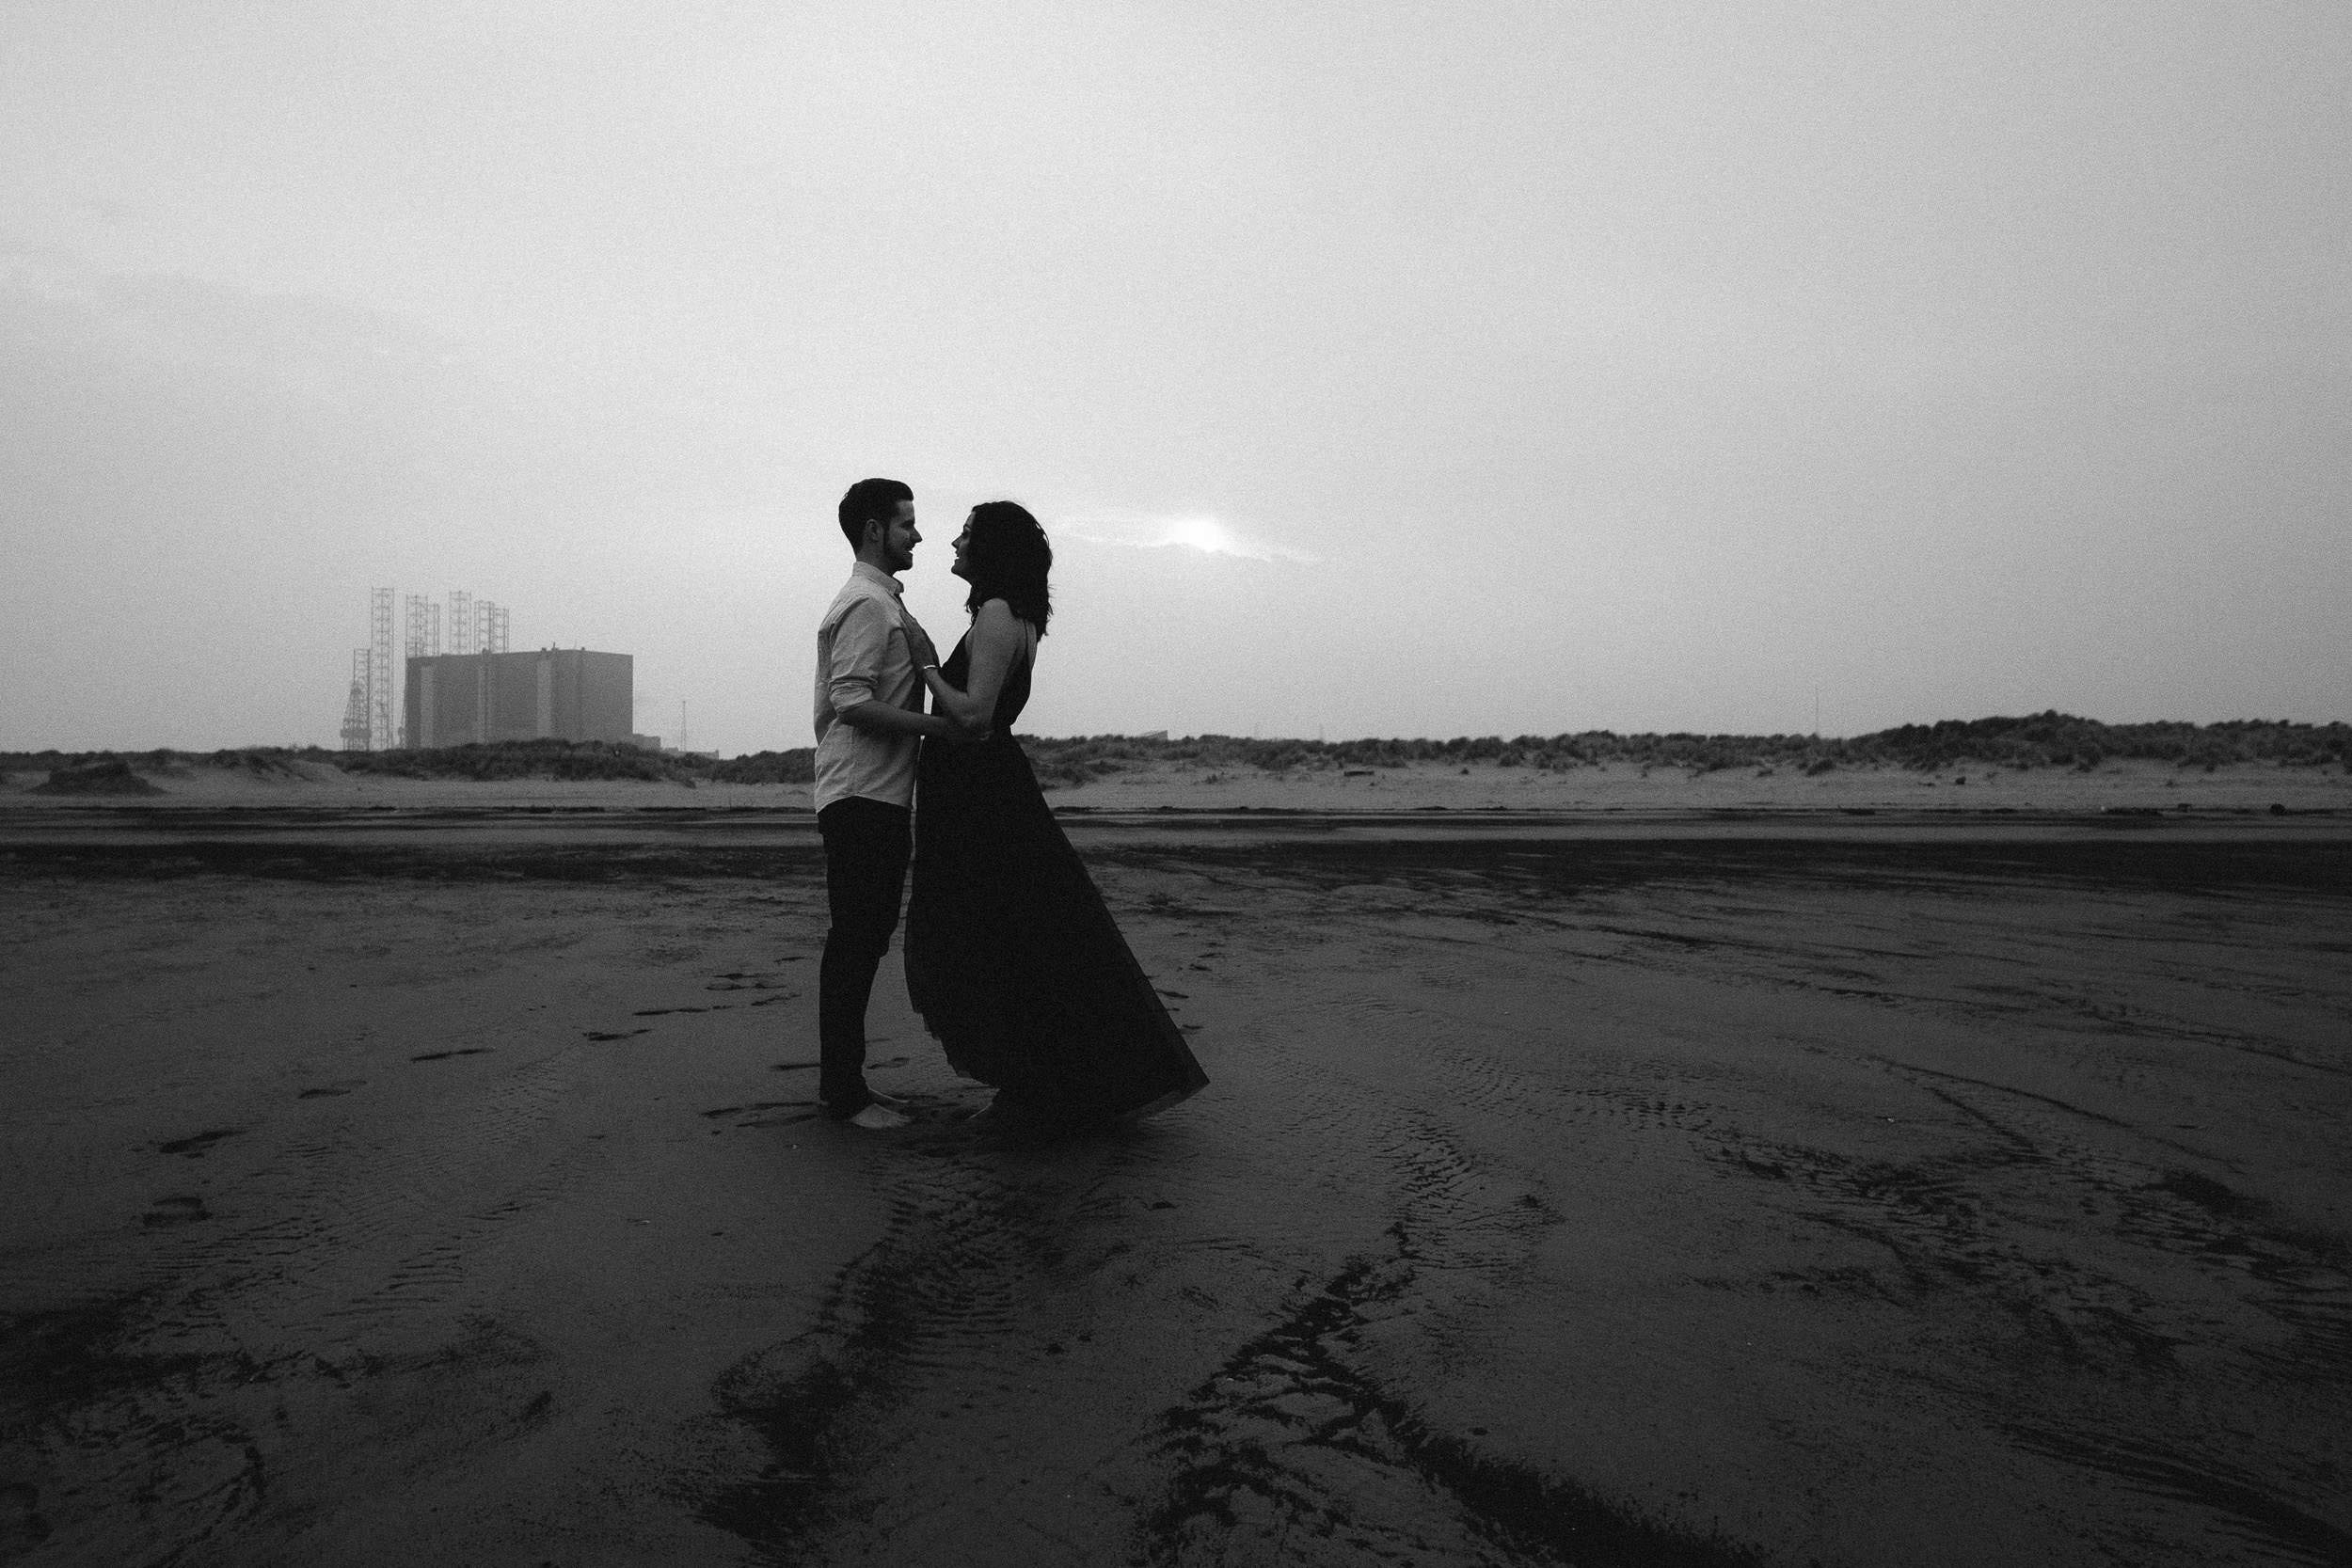 Black and white photo of couple embracing on beach with factory in the background